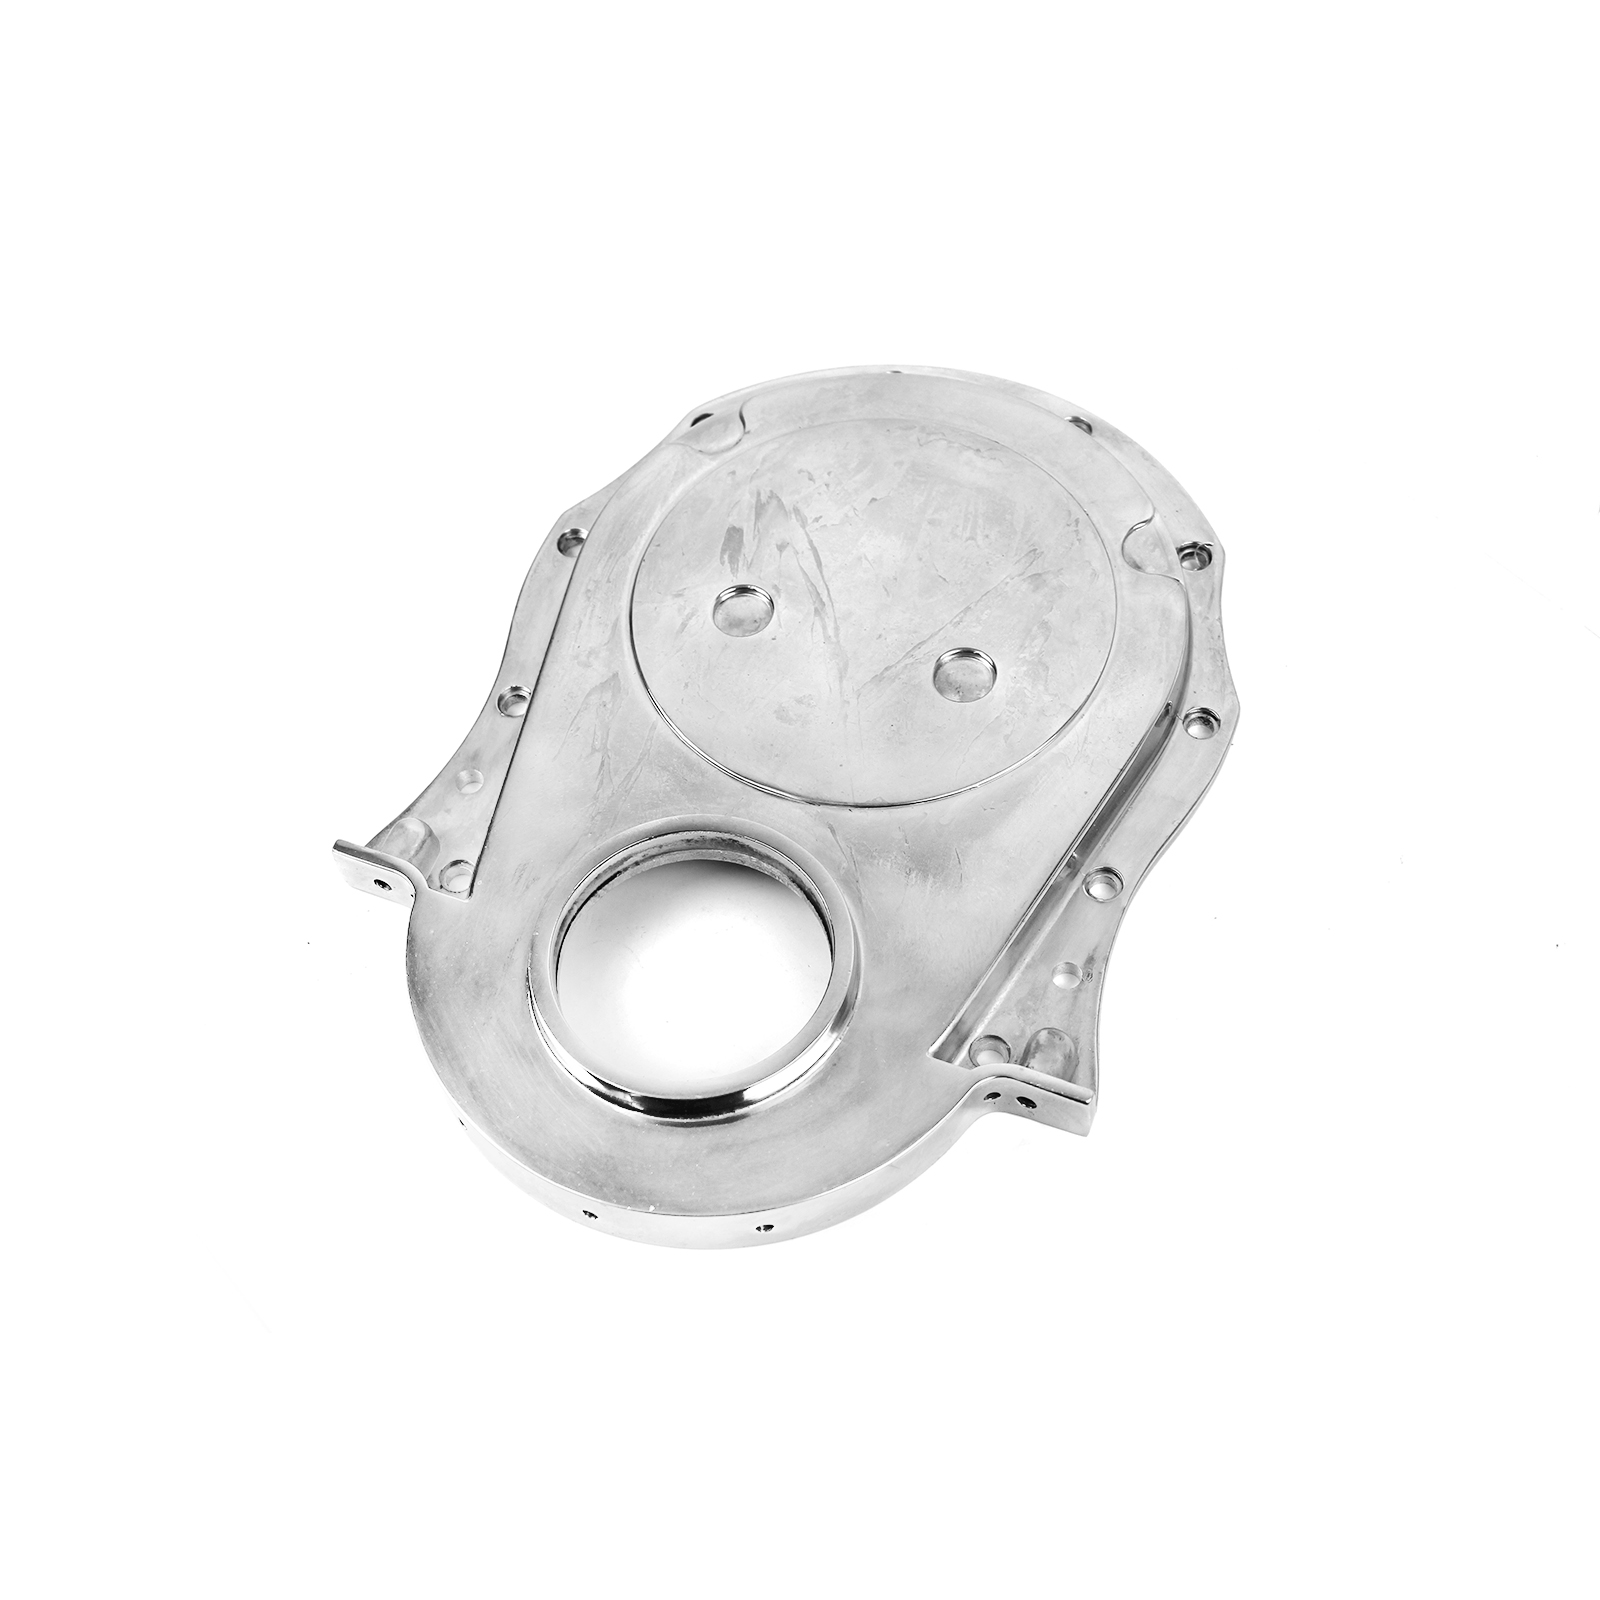 Chevy BBC 454 Gen 1-4 Aluminum Timing Chain Cover Polished